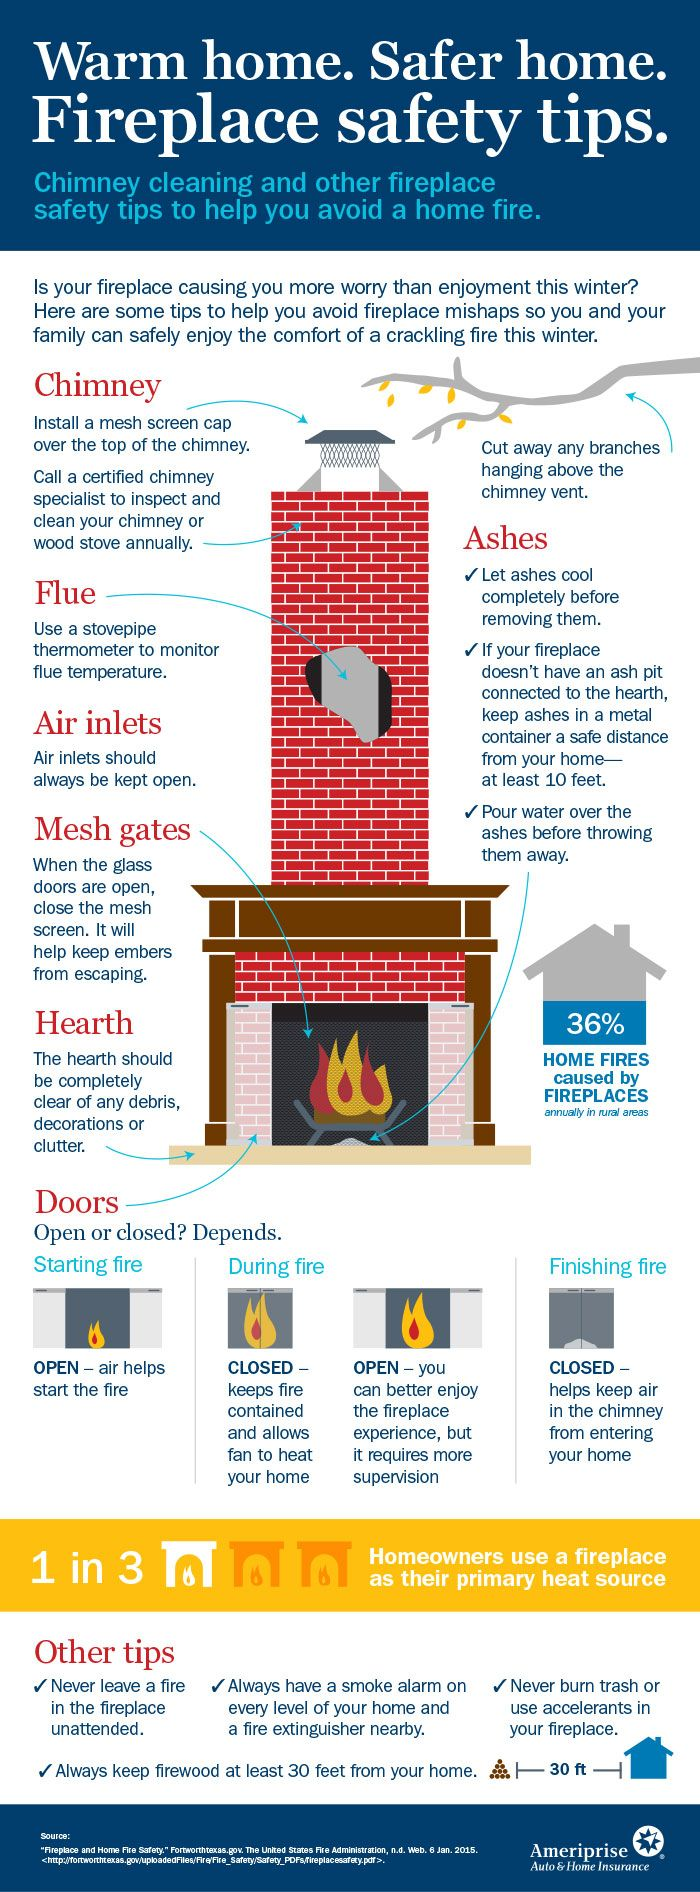 32 Best Home Tips Images On Pinterest Safety Emergency Thermostat Are Connected To At The Furnacehere Is A Typical Wiring This Infographic Provides Some Fireplace Help You Enjoy Roaring Fire Colder